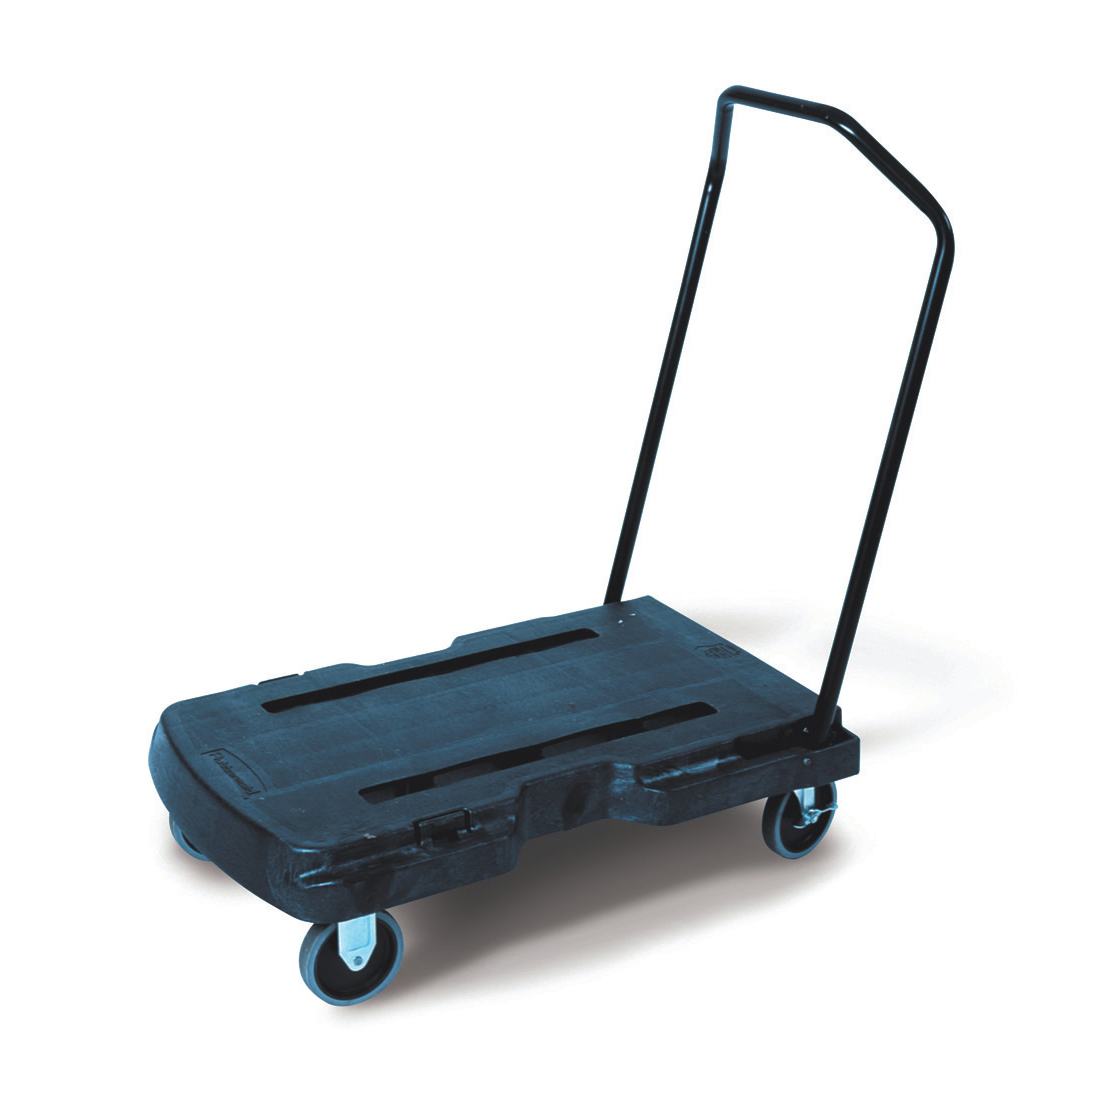 Platform Trucks Rubbermaid Triple Platform Truck with Castors 2 Fixed 2 Swivel Capacity 180kg L826xW521mm Ref 4401